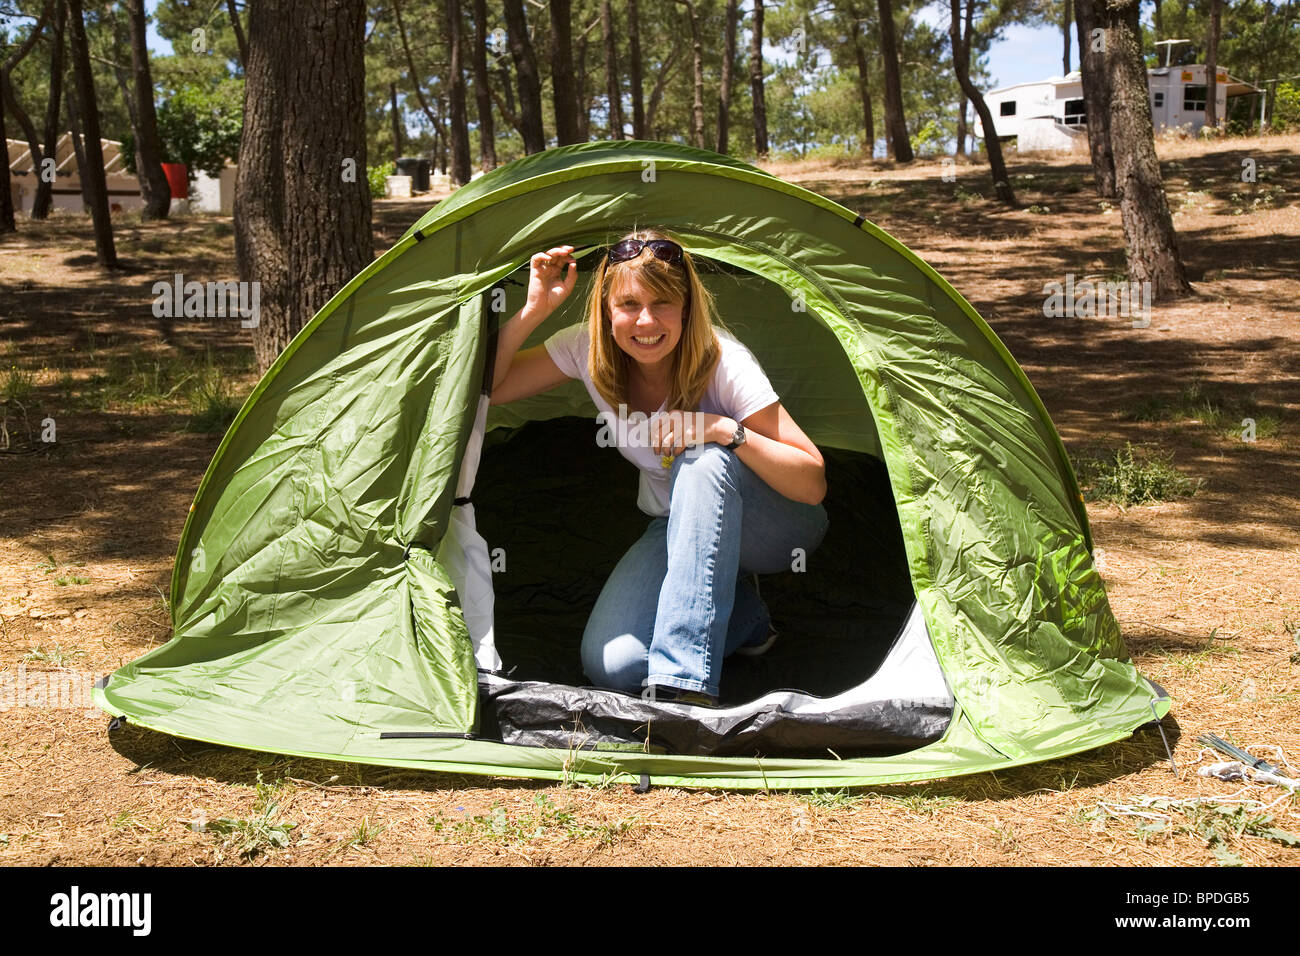 A blonde woman enjoys c&ing in a green tent  sc 1 st  Alamy & A blonde woman enjoys camping in a green tent Stock Photo ...